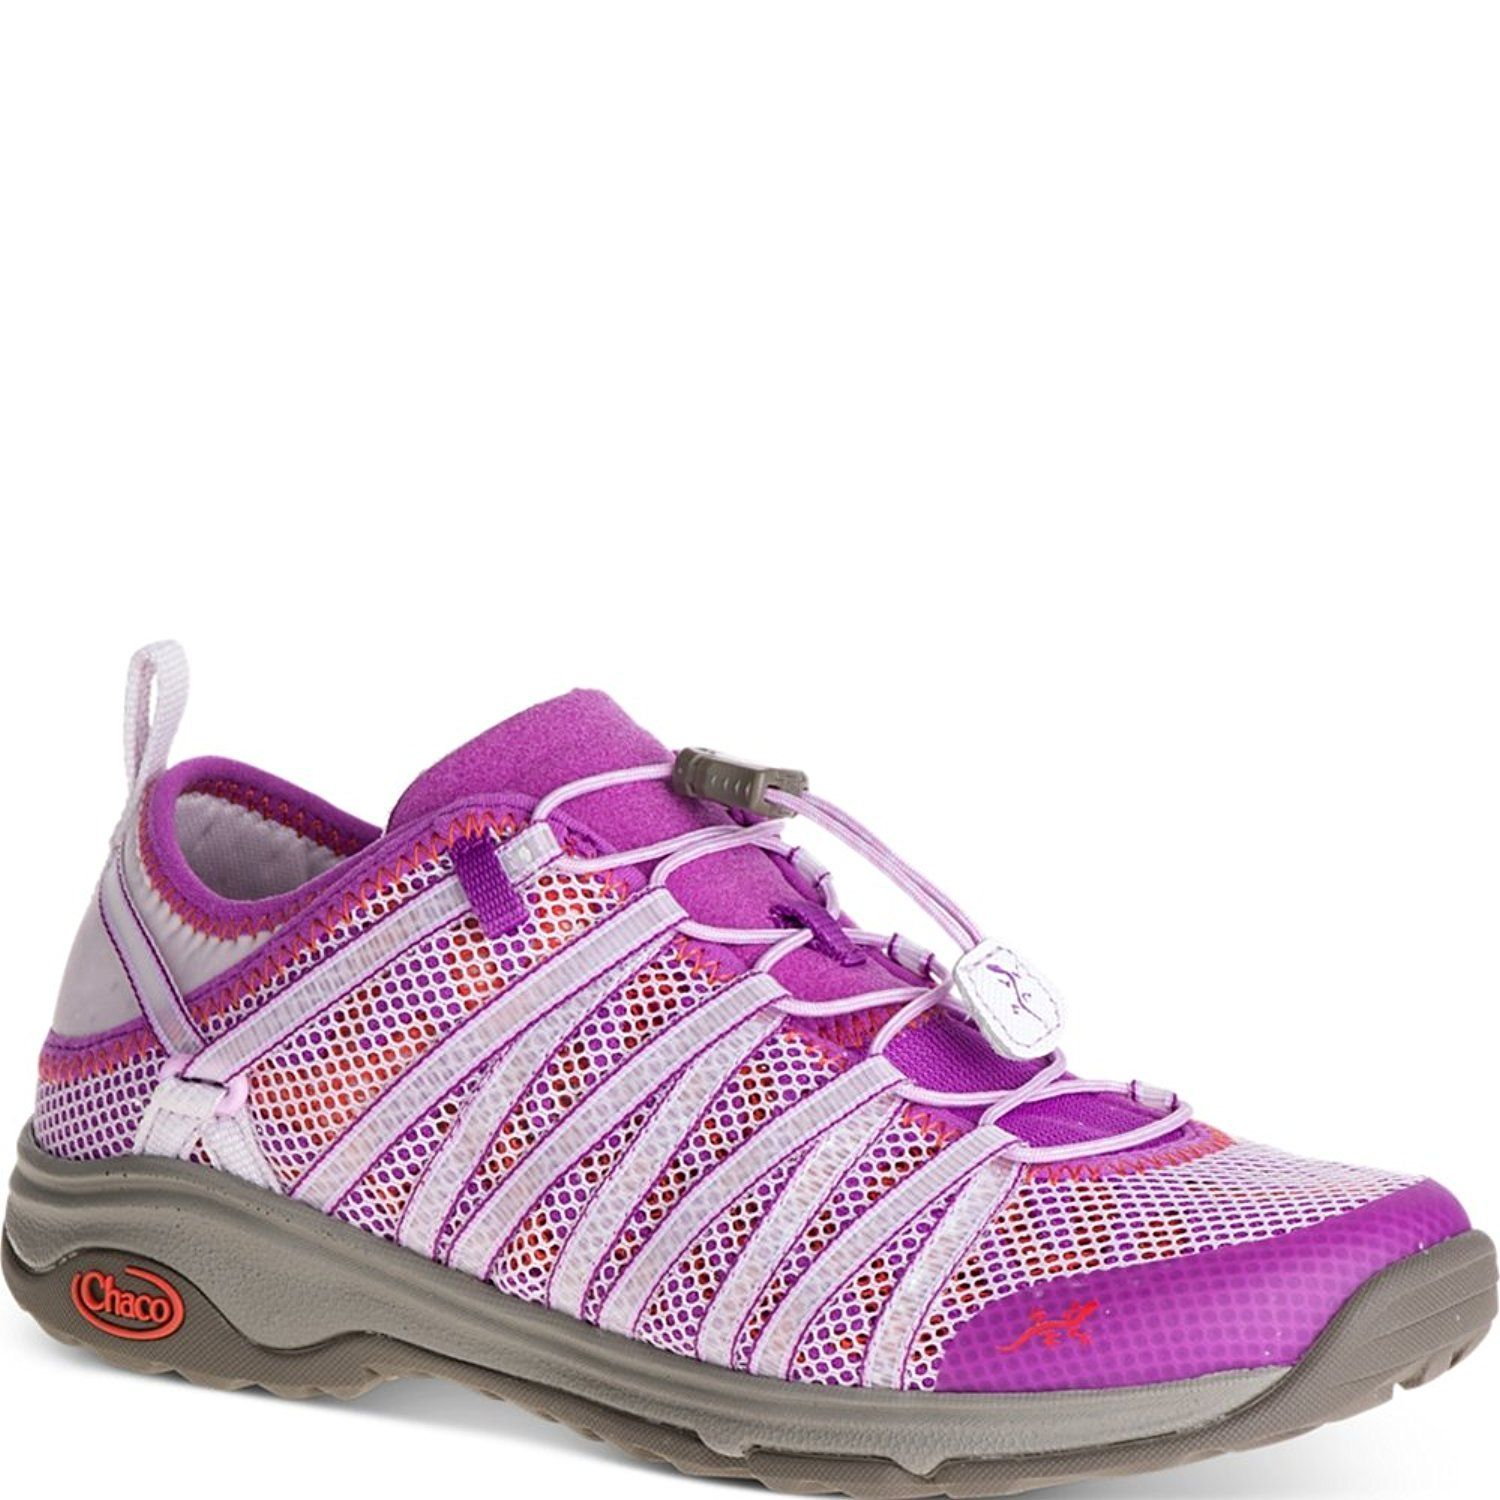 2f546775332a Chaco Women s Outcross Evo 1.5 Hiking Shoe     Details can be found by  clicking